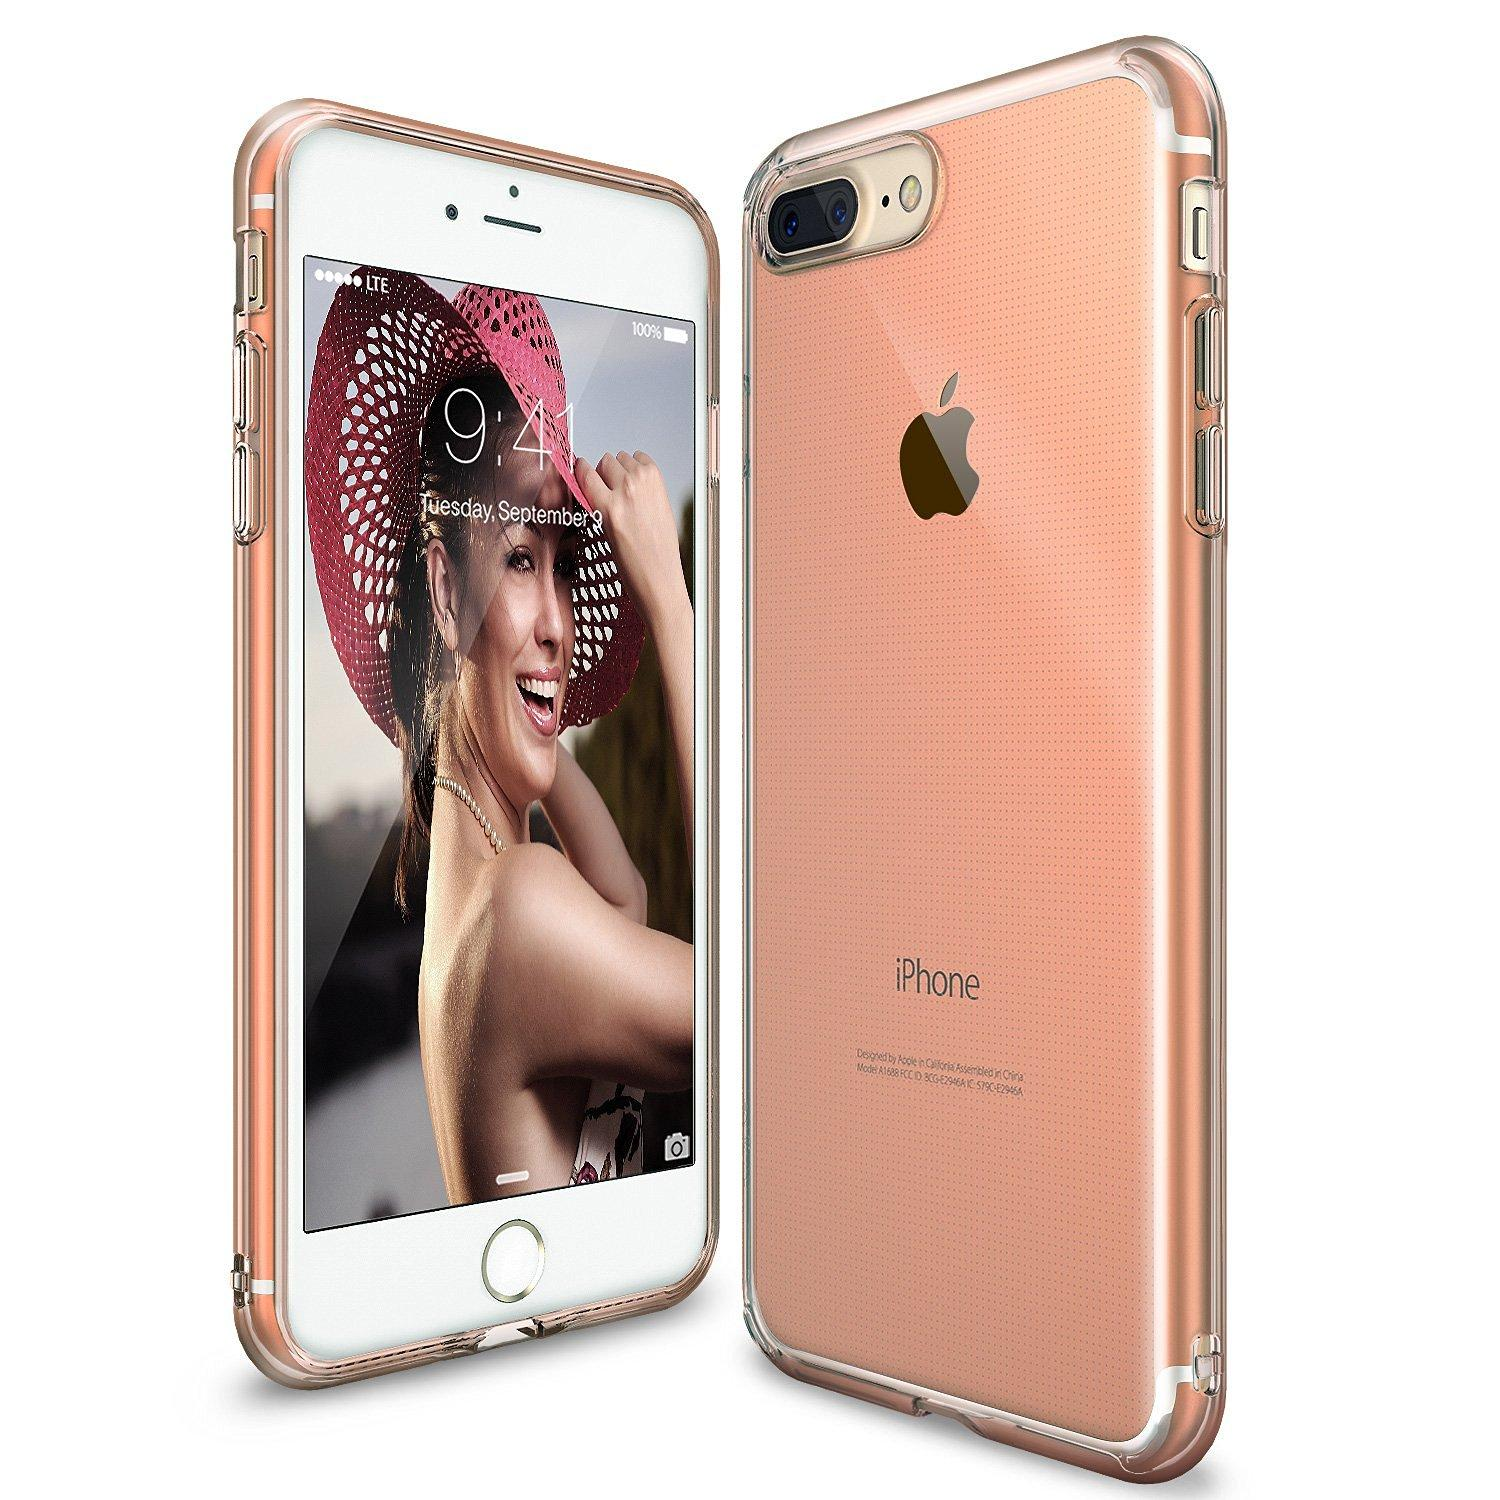 Buy Ringke Phone Cases Accessories Rearth Iphone 7 Edge Black Air Lightweight Thin Slim Case Plus 8 Rose Gold